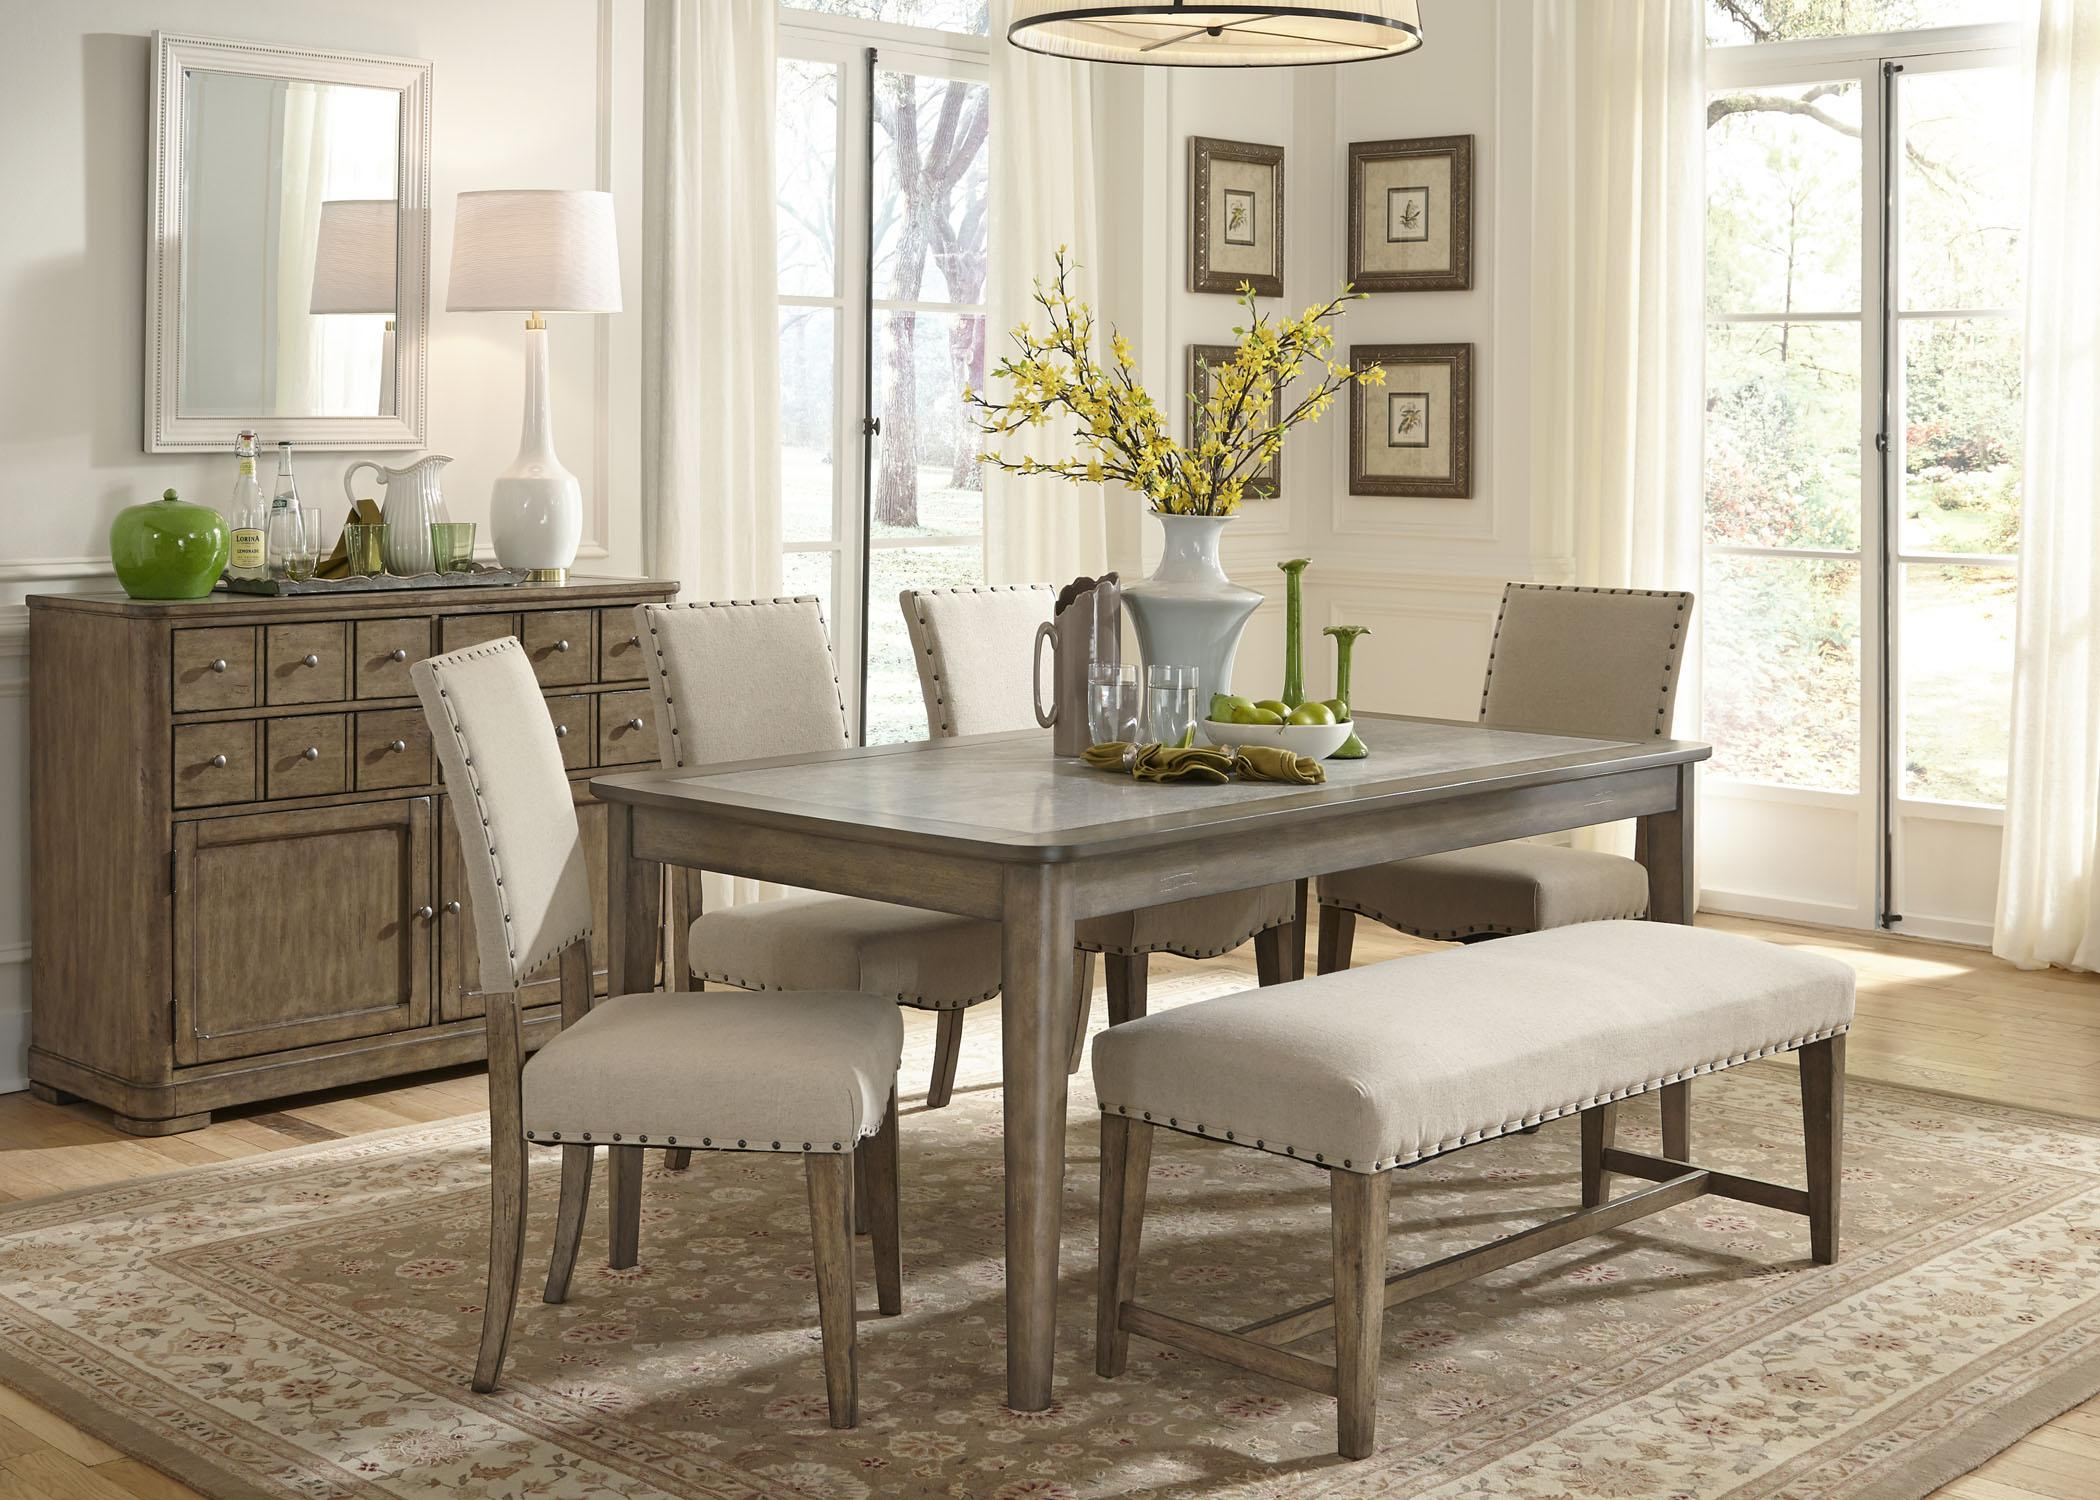 Rustic Dining Room Tables With Bench rustic casual 6 piece dining table and chairs set with bench